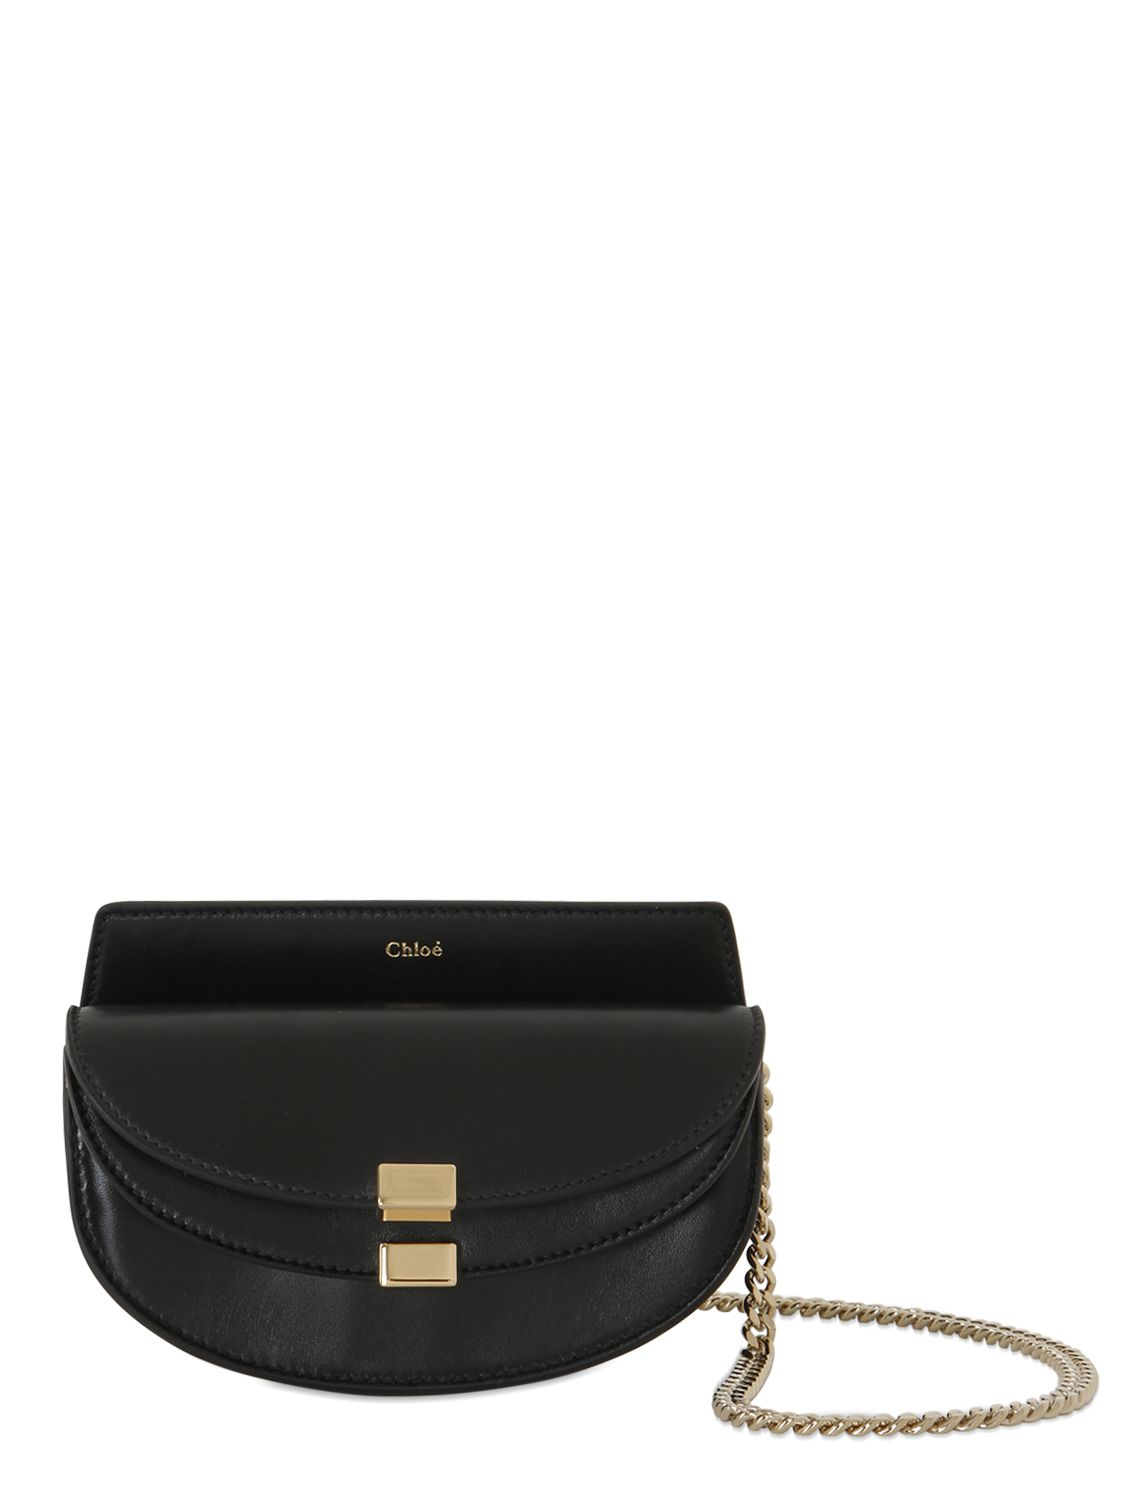 marcie chloe bag replica - small georgia bag in nappa lambskin \u0026amp; small grain calfskin